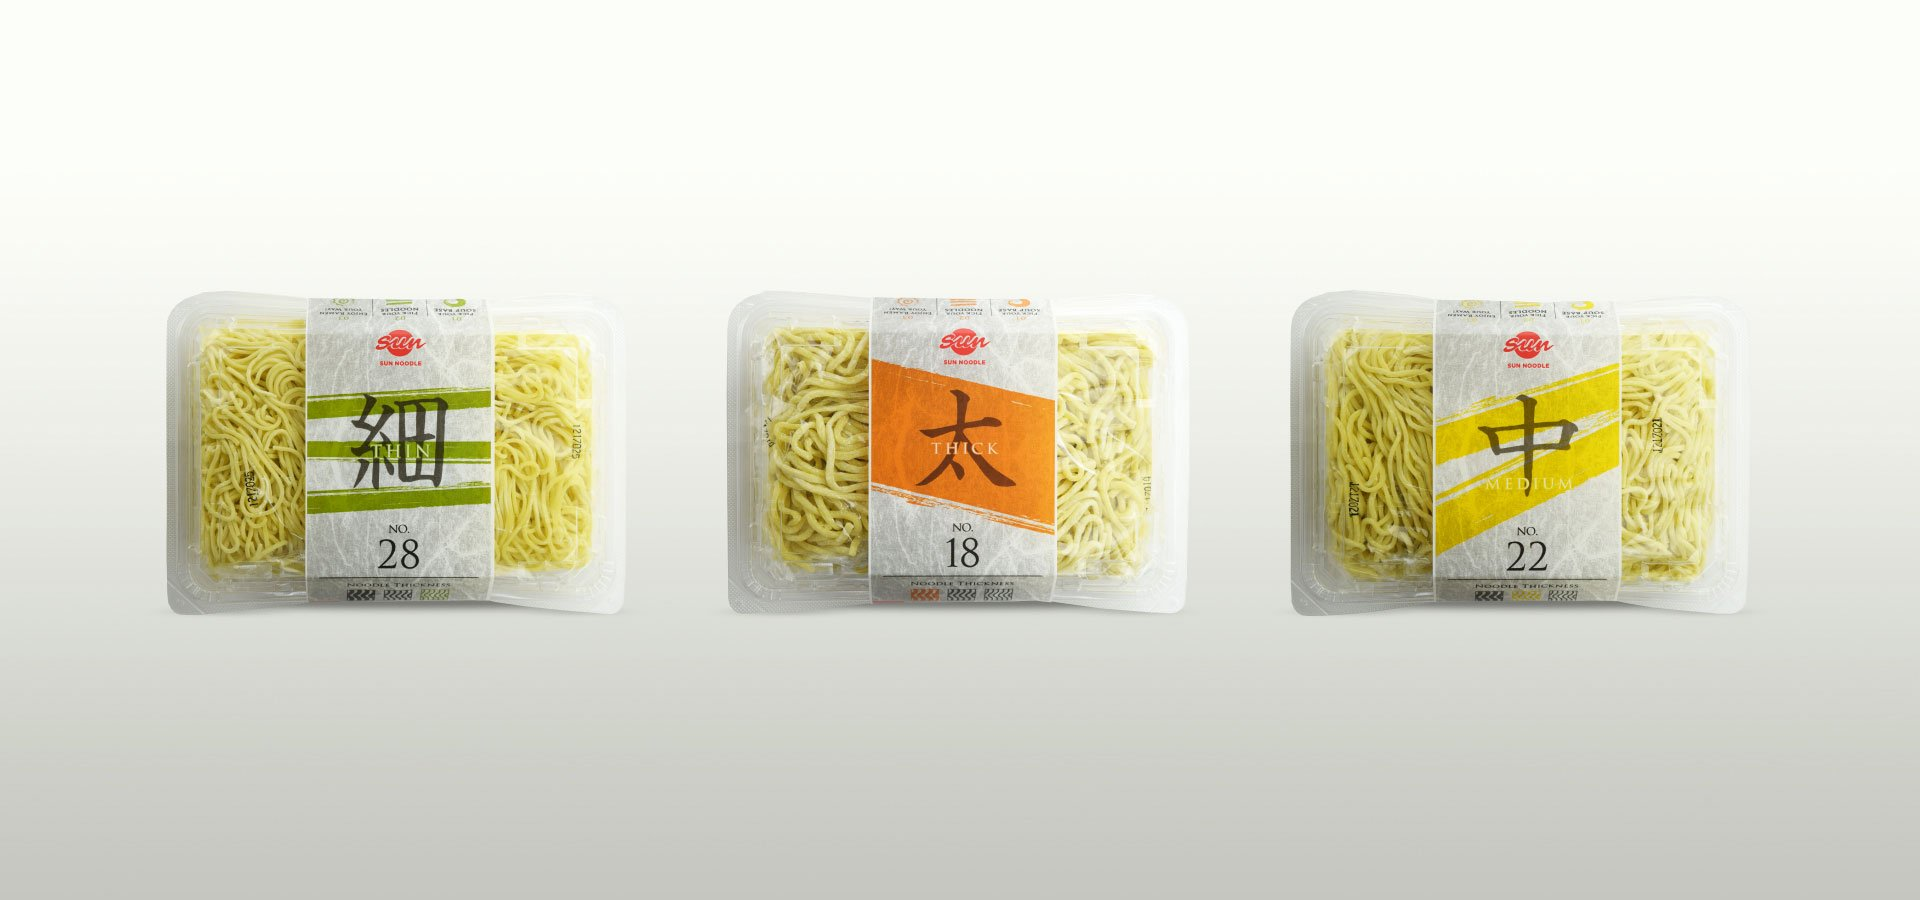 Sun Noodle 3 different thickness noodles